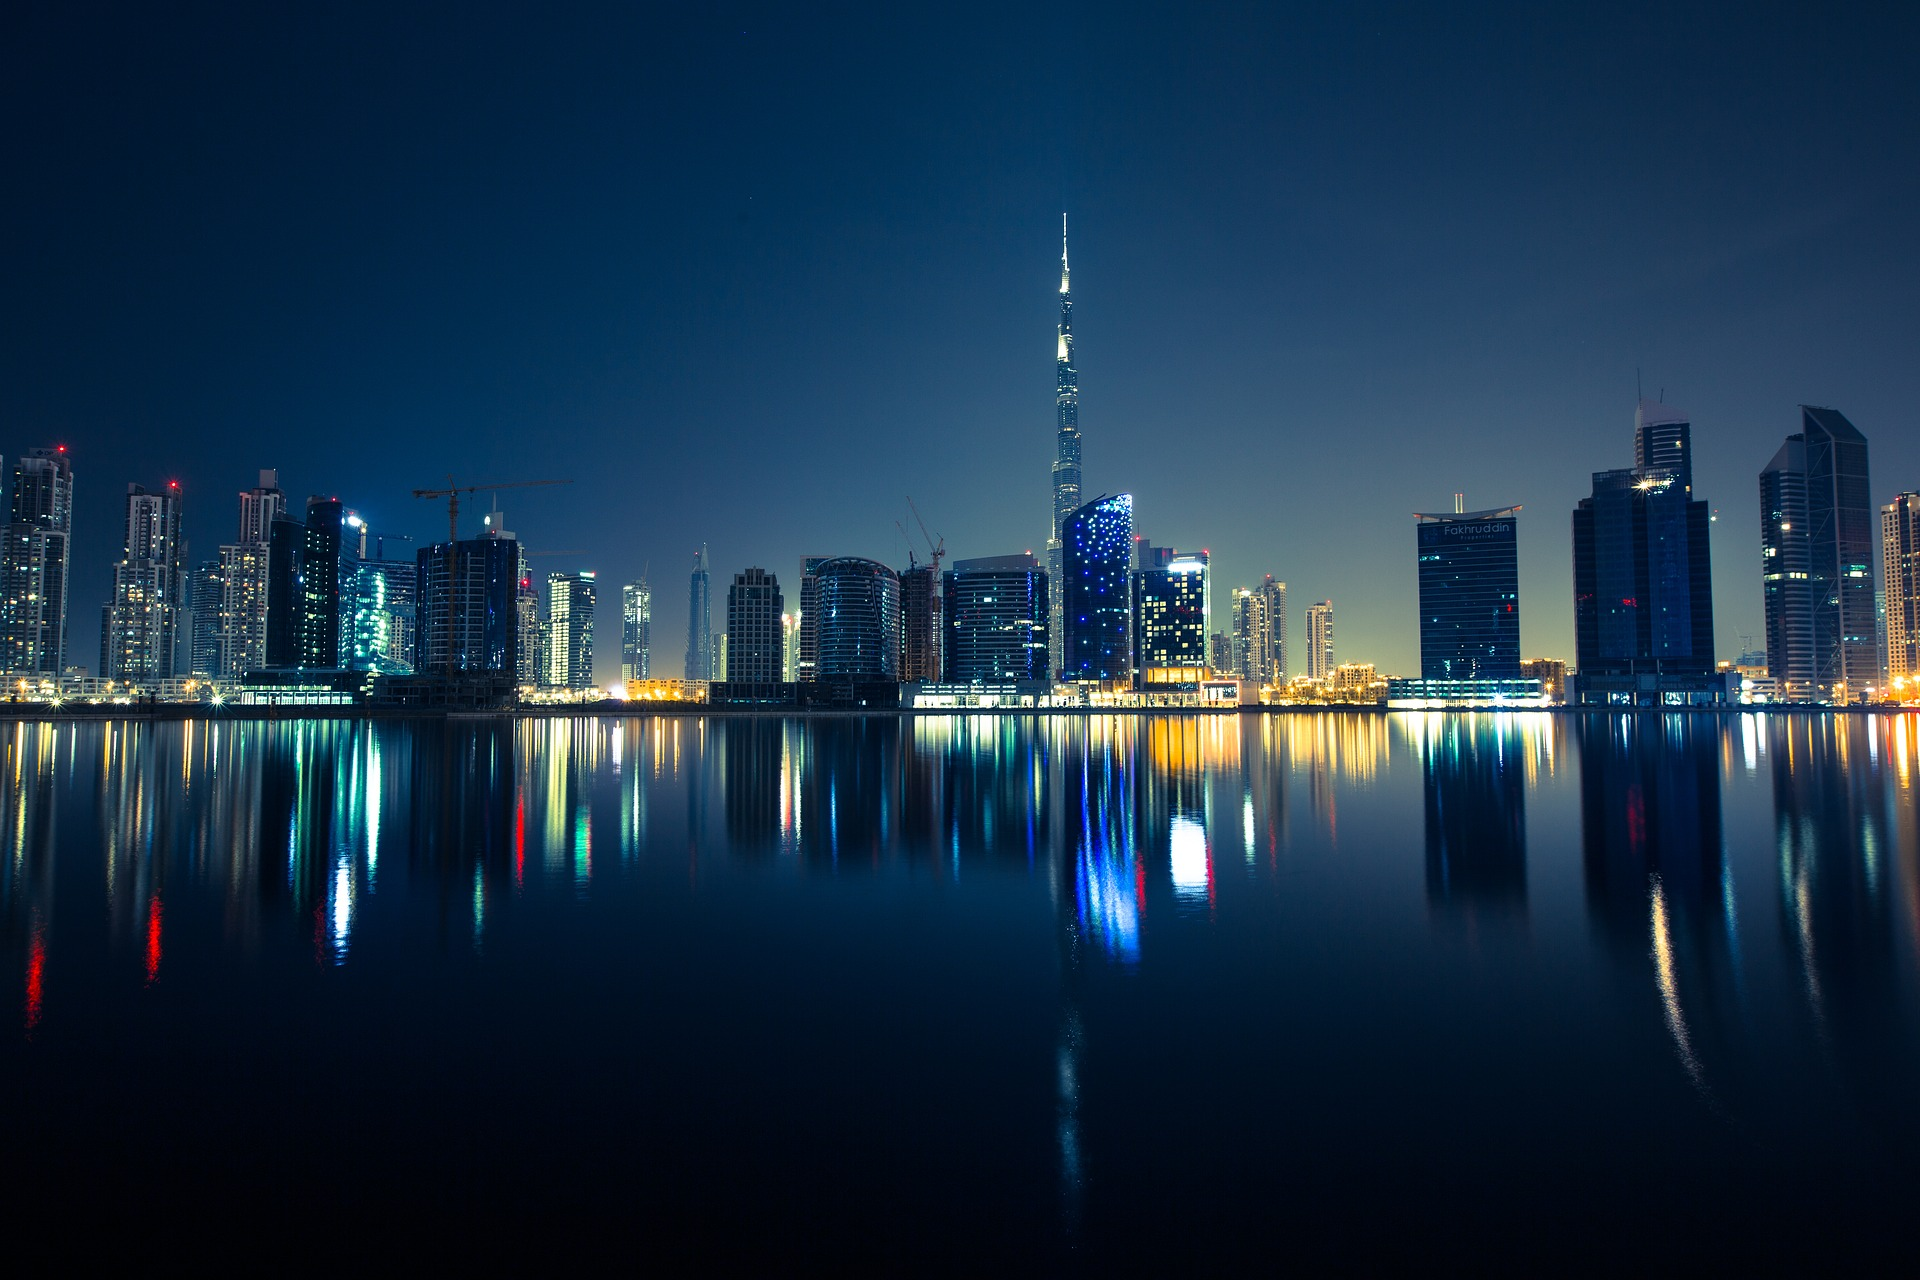 Things To Do in Dubai: 5 Top Most Exciting Spots to Visit in Dubai